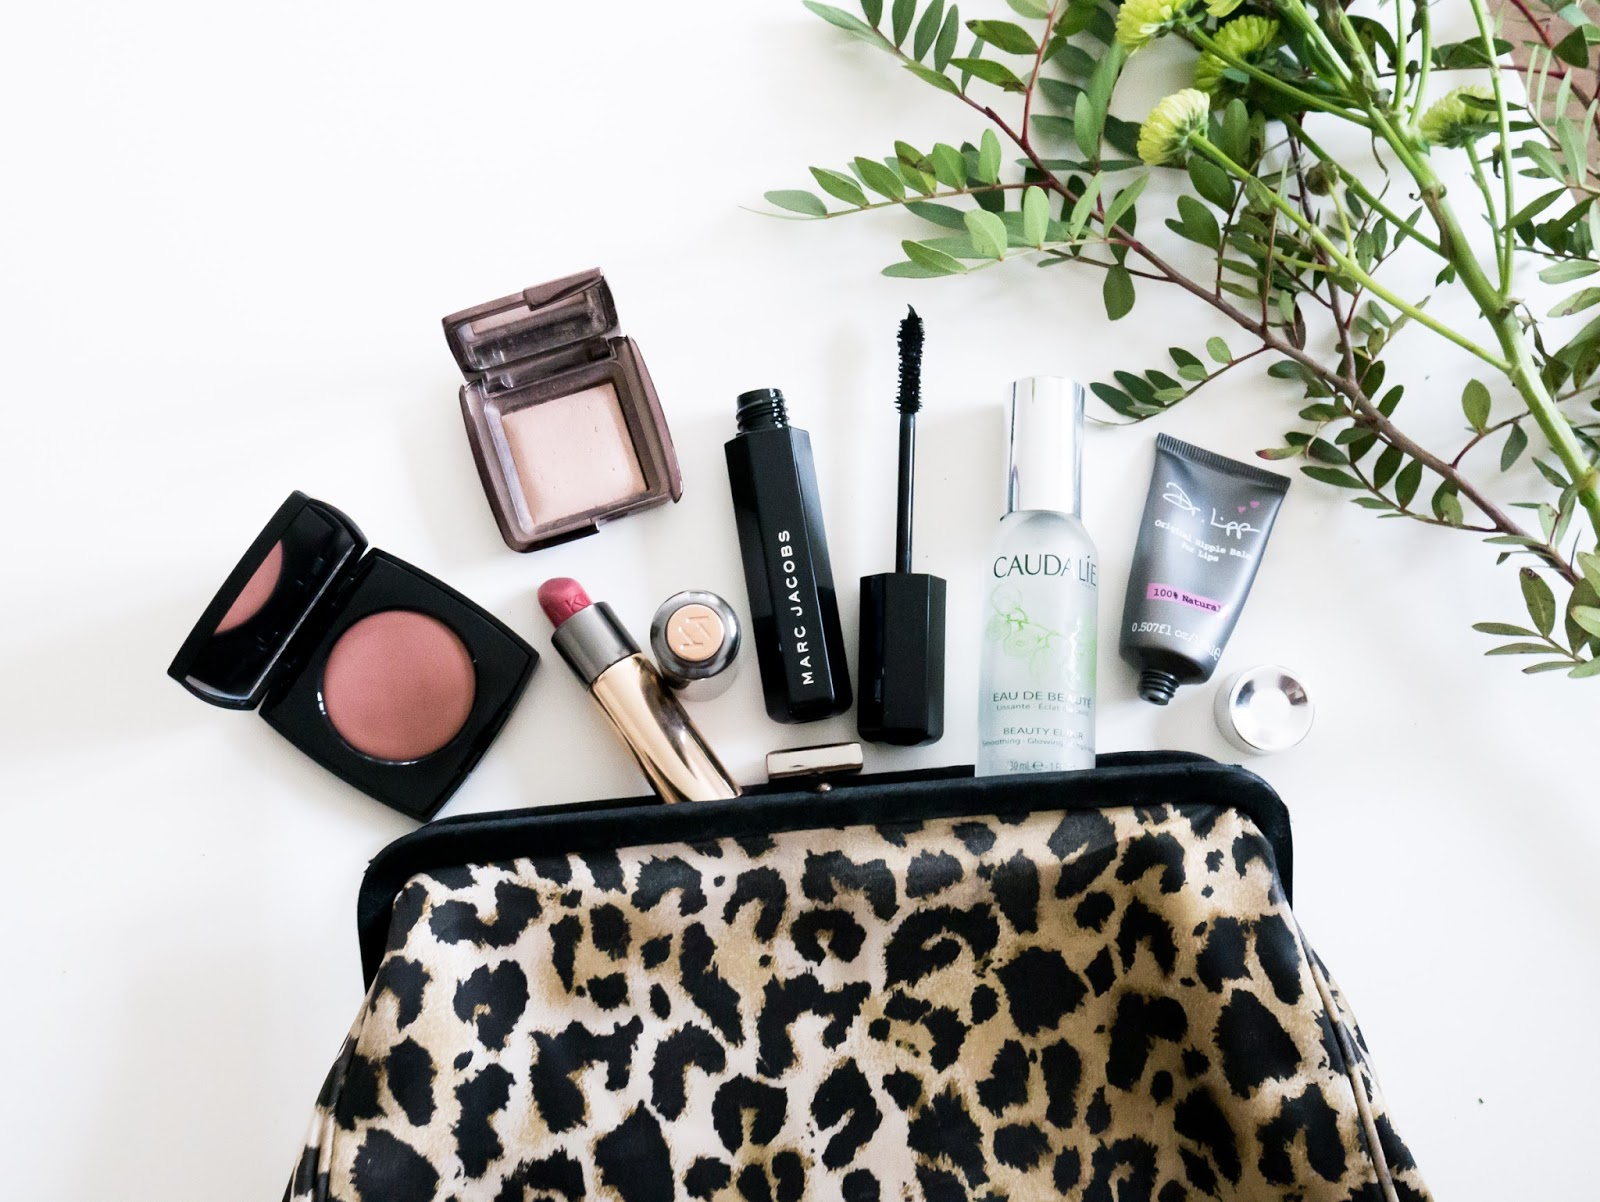 What's In My Beauty Bag, Chanel, Hourglass, Marc Jacobs